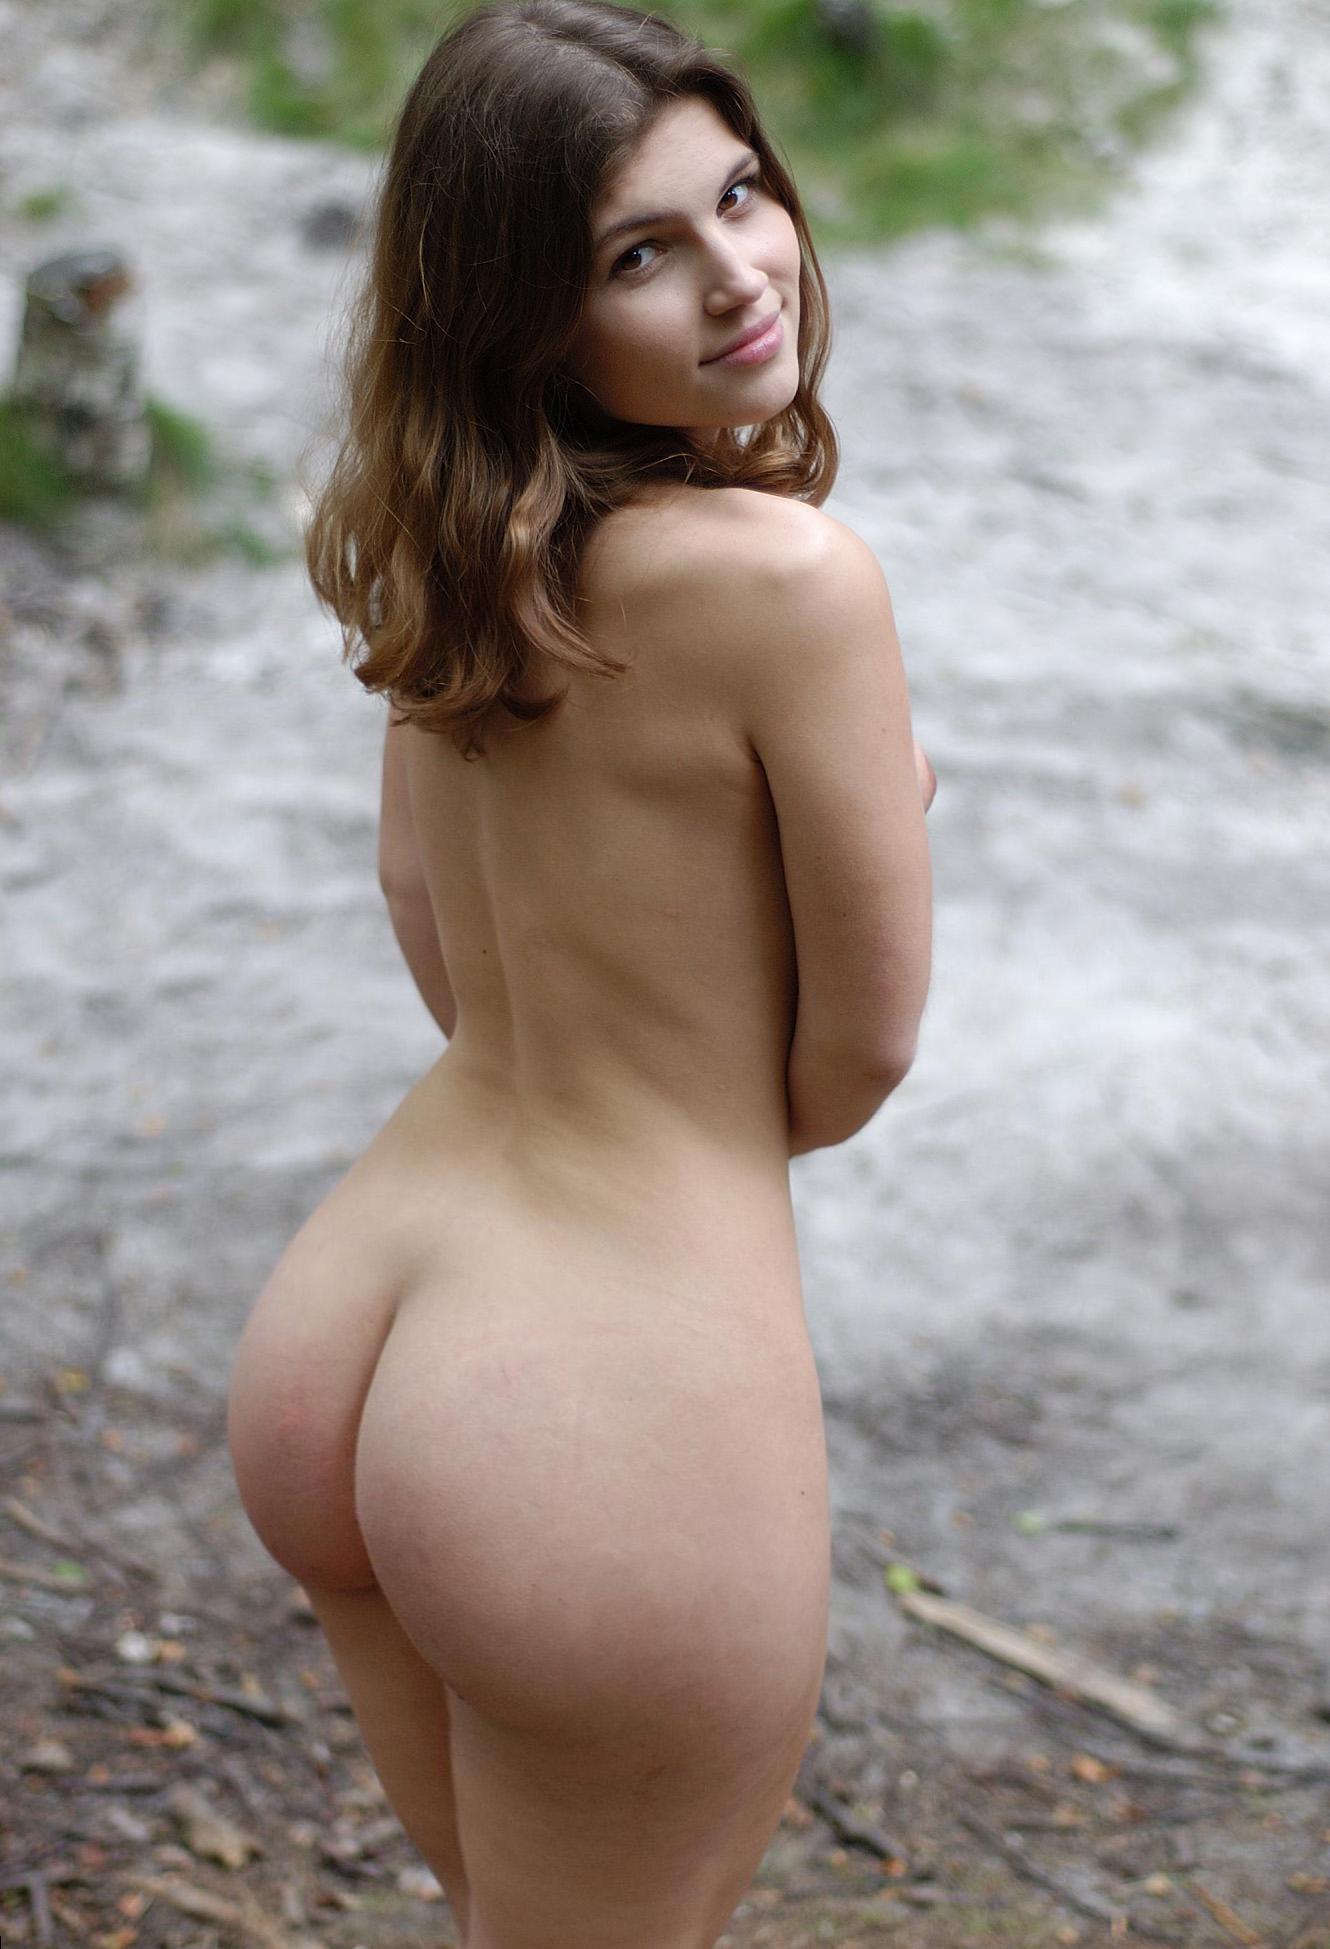 Beautiful girl nude butts necessary